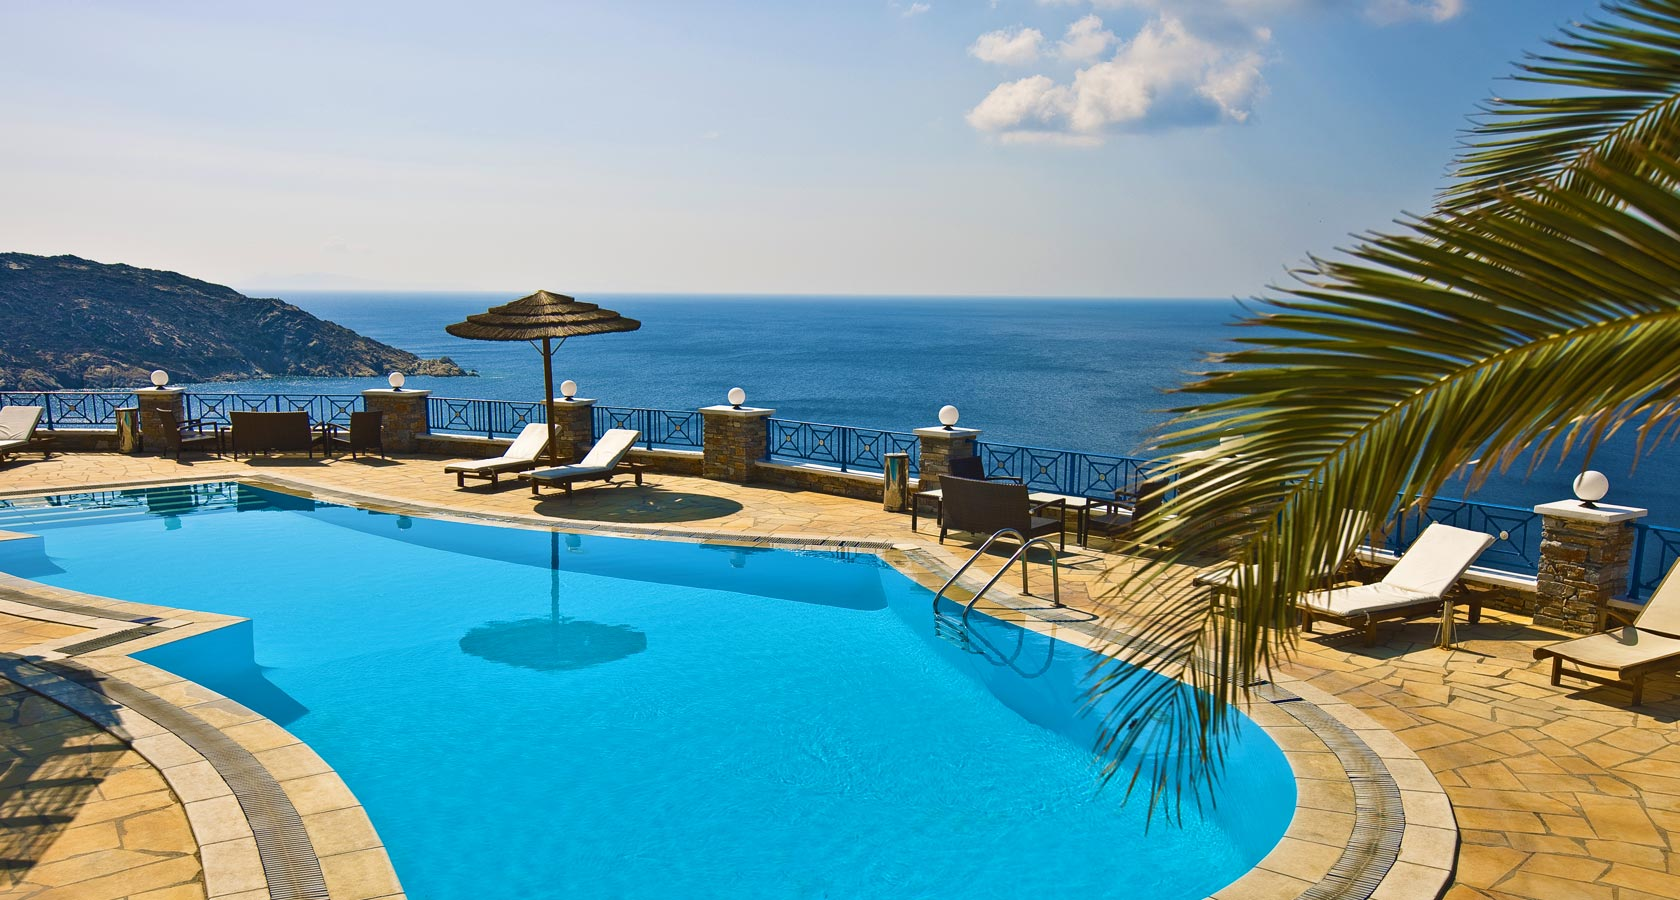 The Pool and Sea View of Hermes Hotel in Ios island Greece